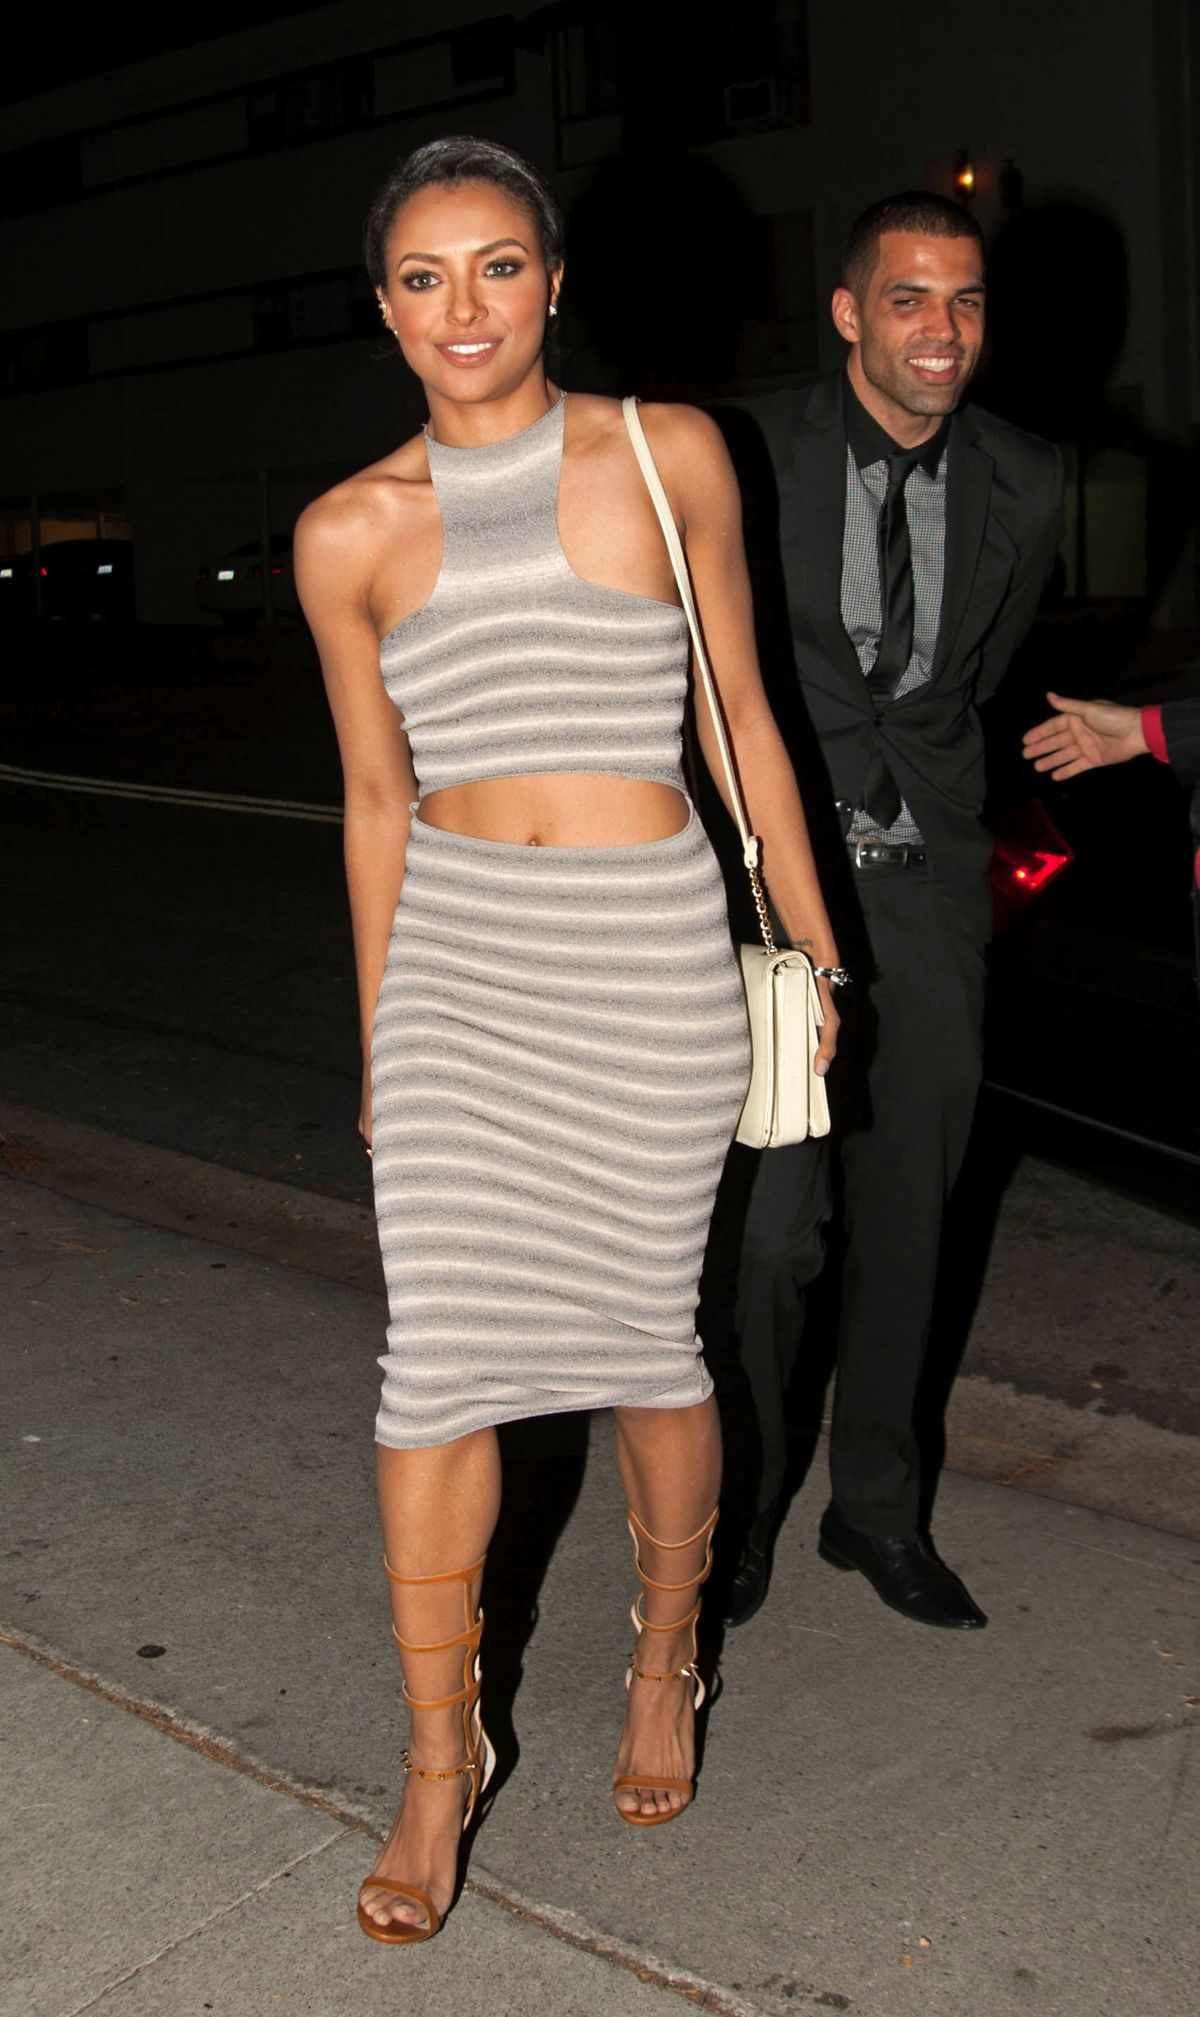 KAT GRAHAM and Cottrell Guidry Out for Dinner - HawtCelebs